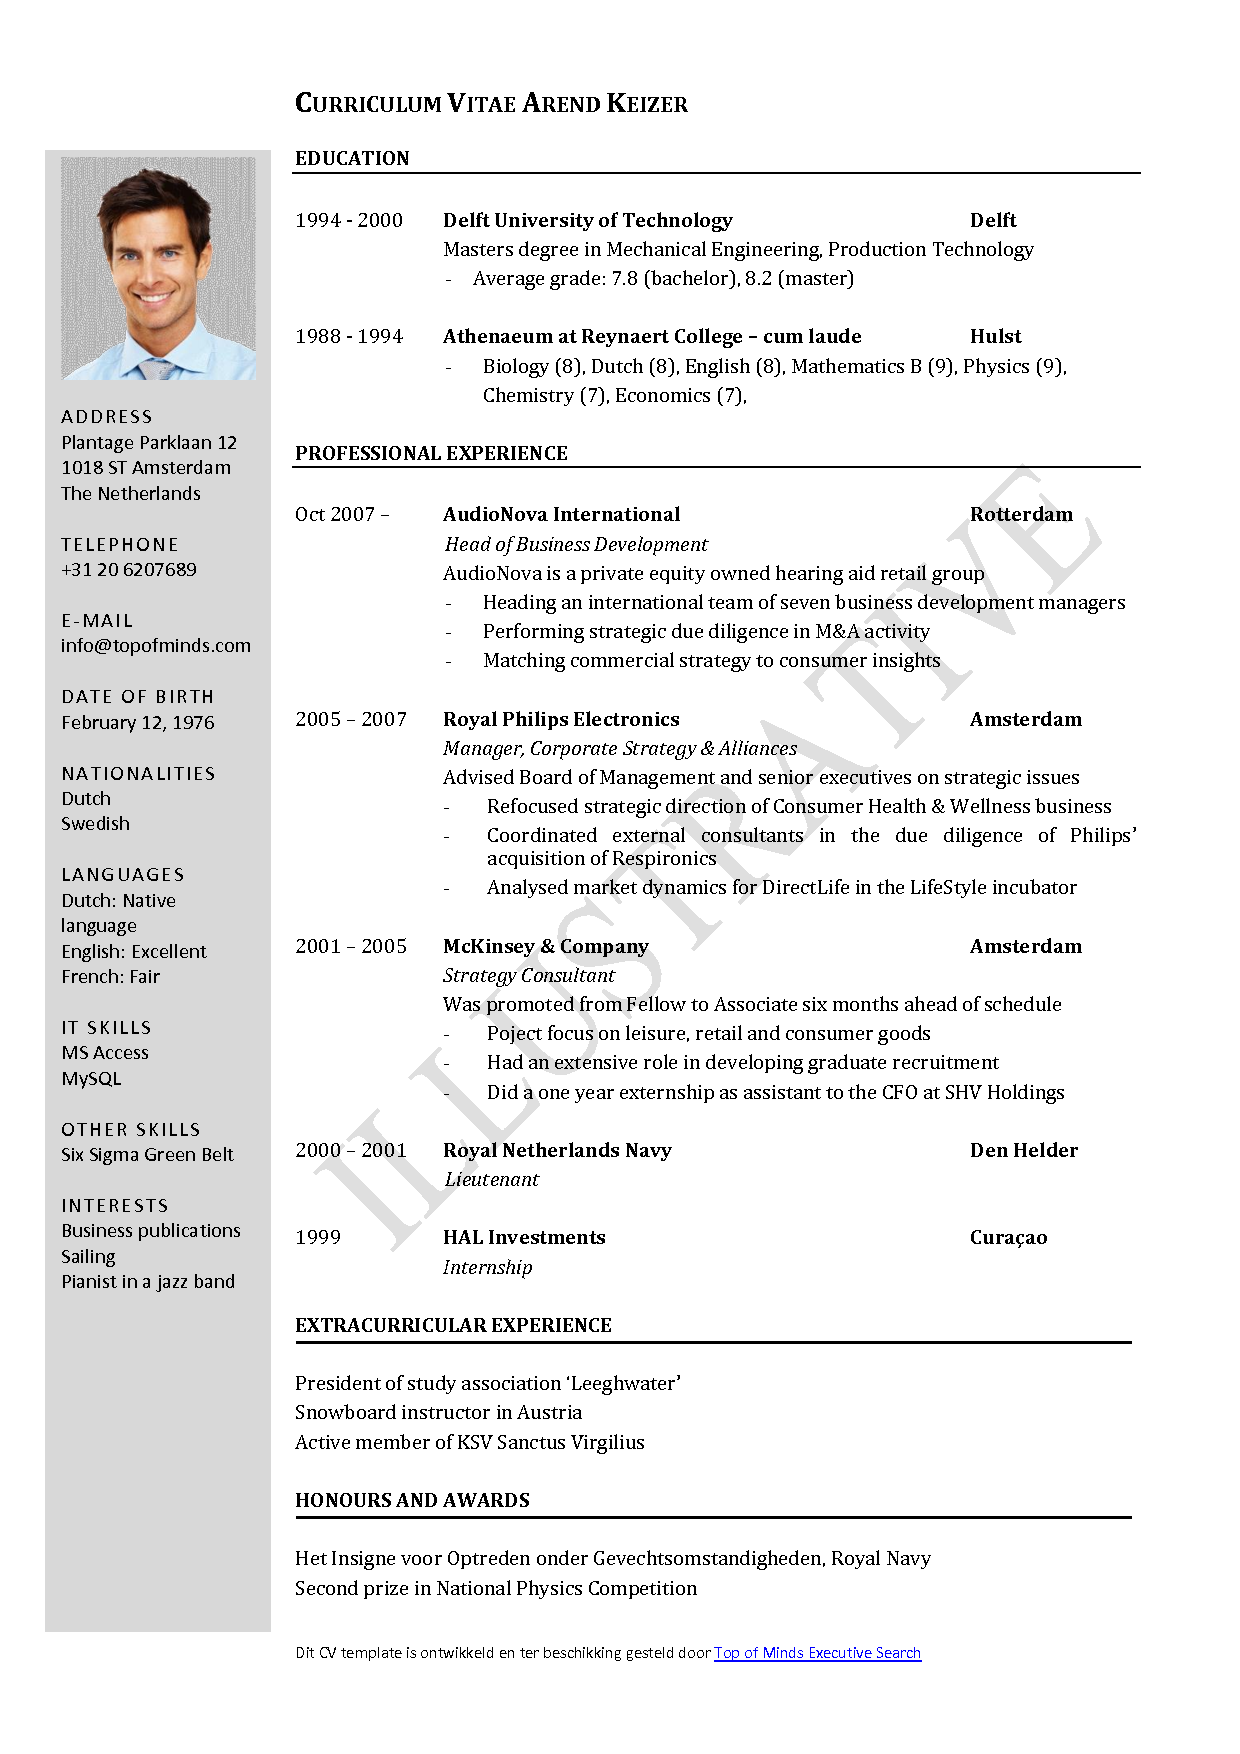 free curriculum vitae template word download cv template - Word Templates Resume